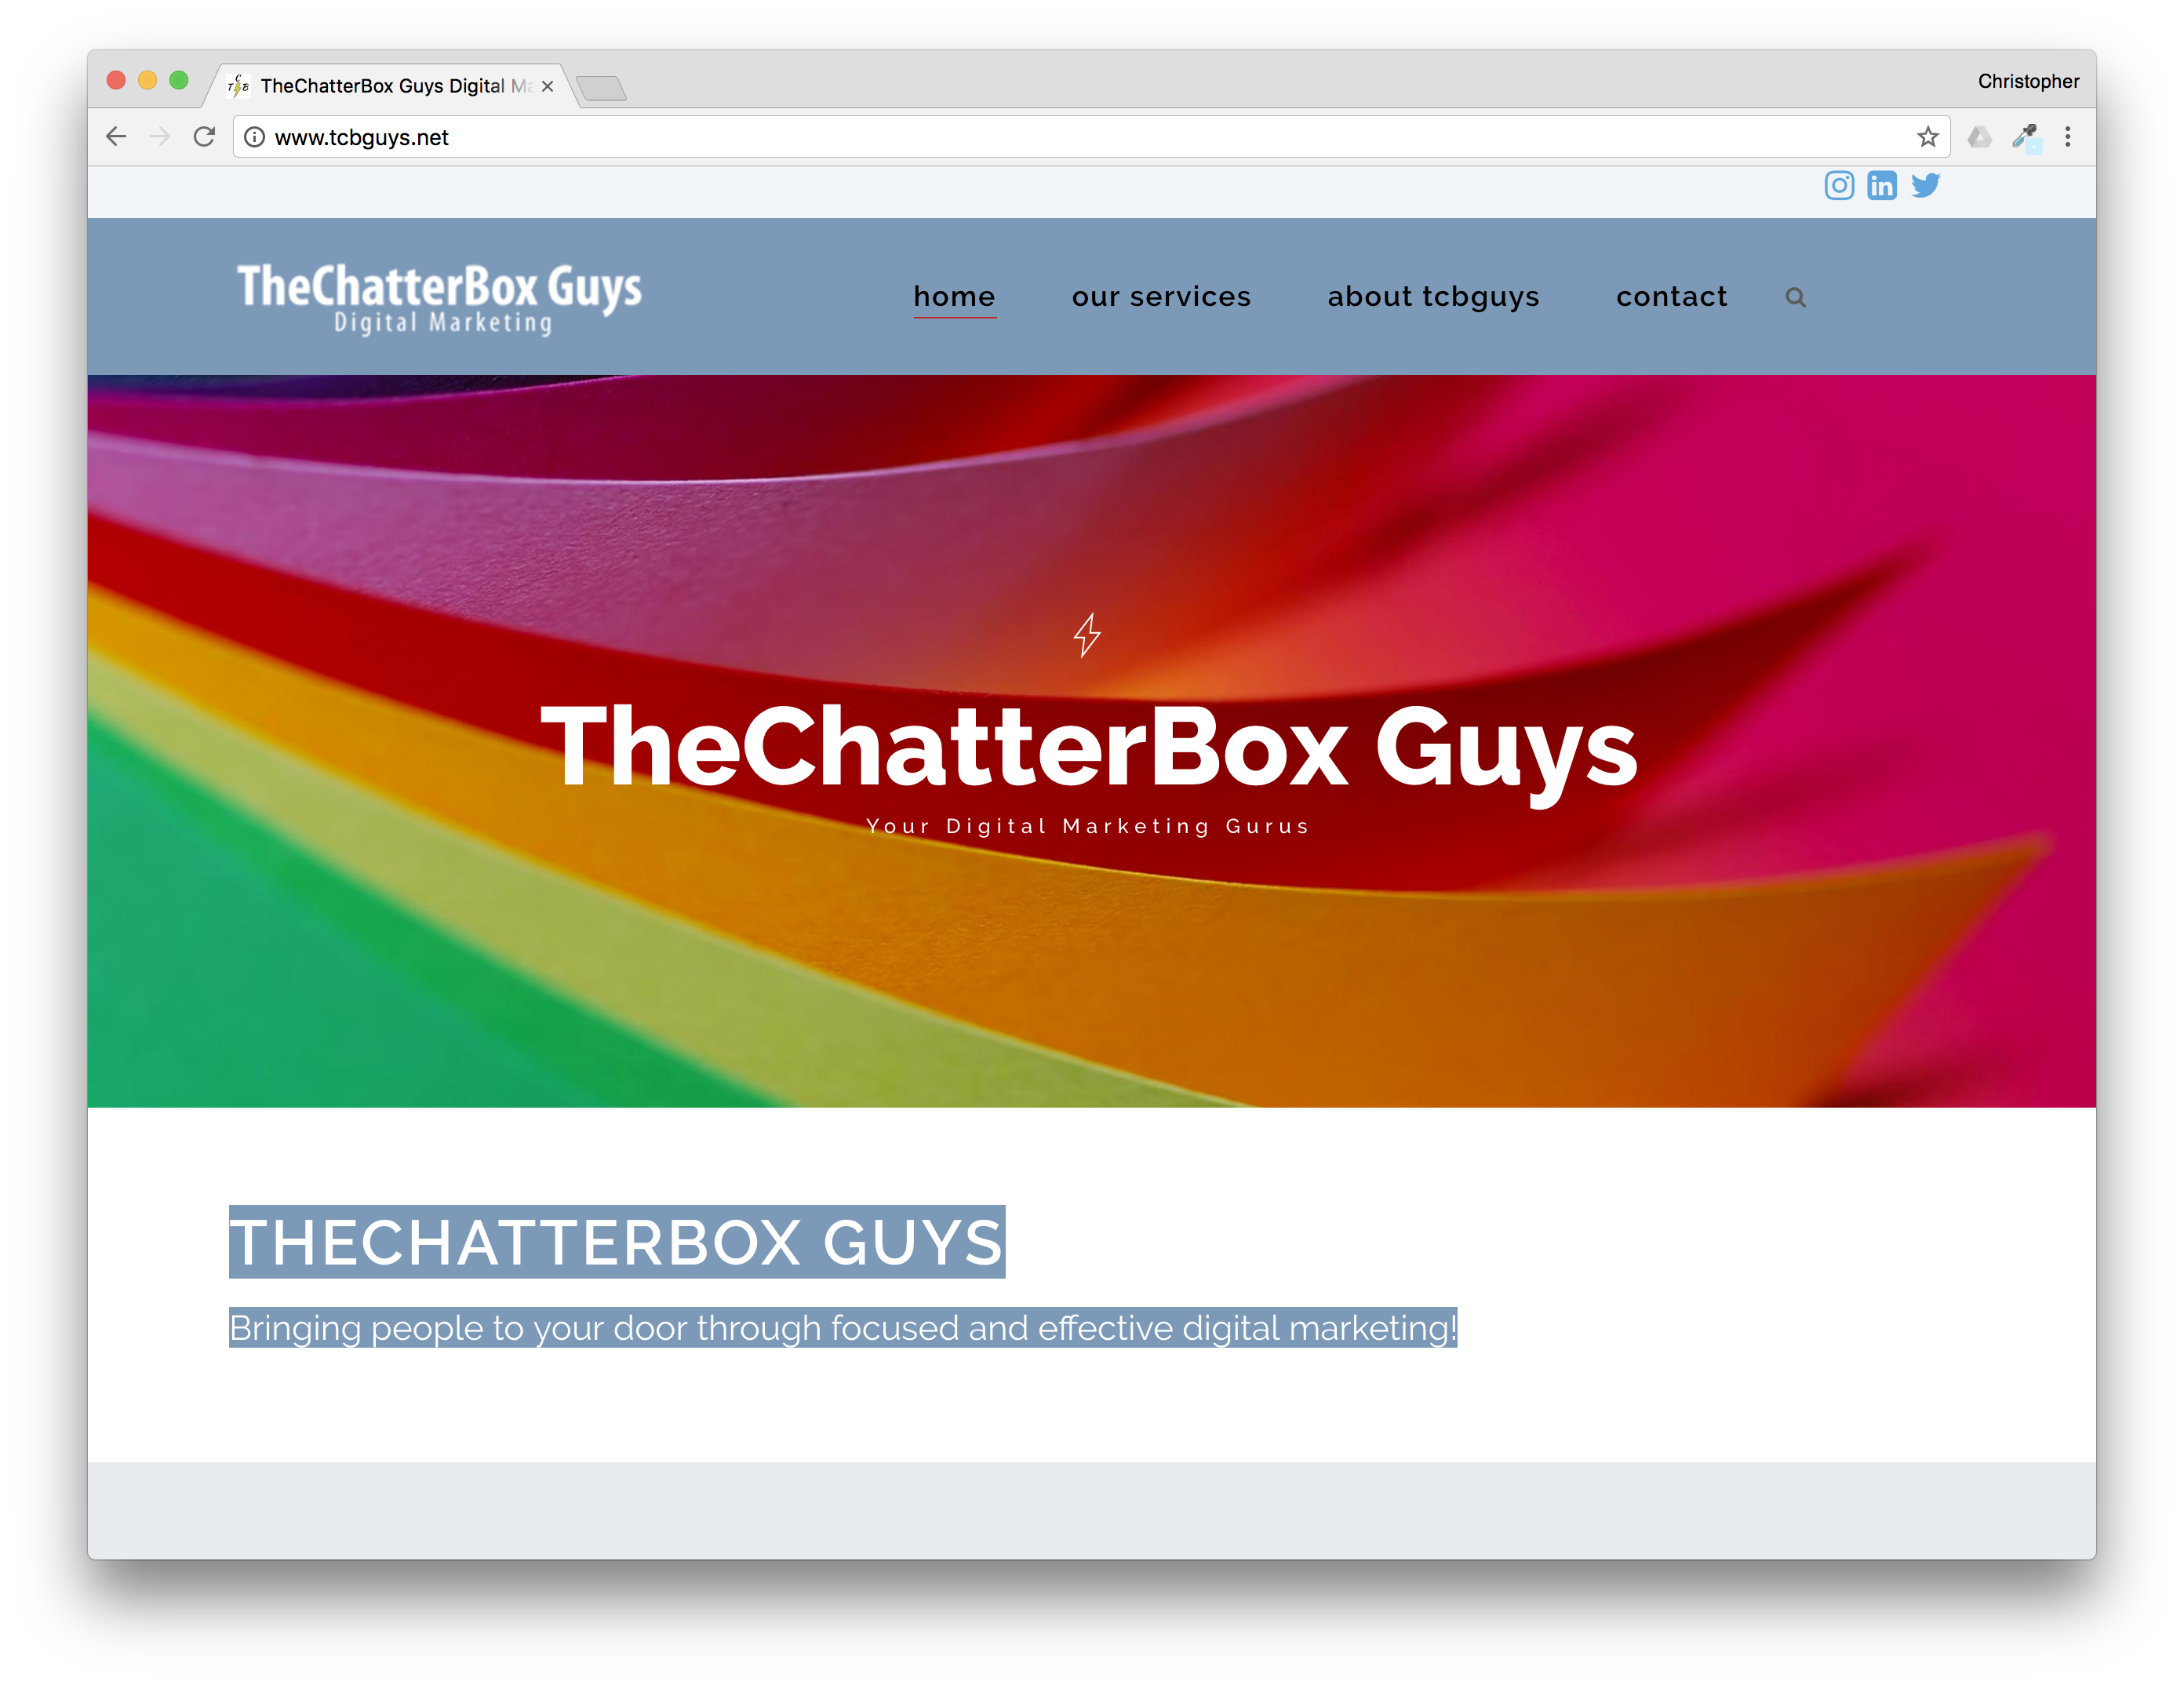 Web Design: TheChatterBox Guys